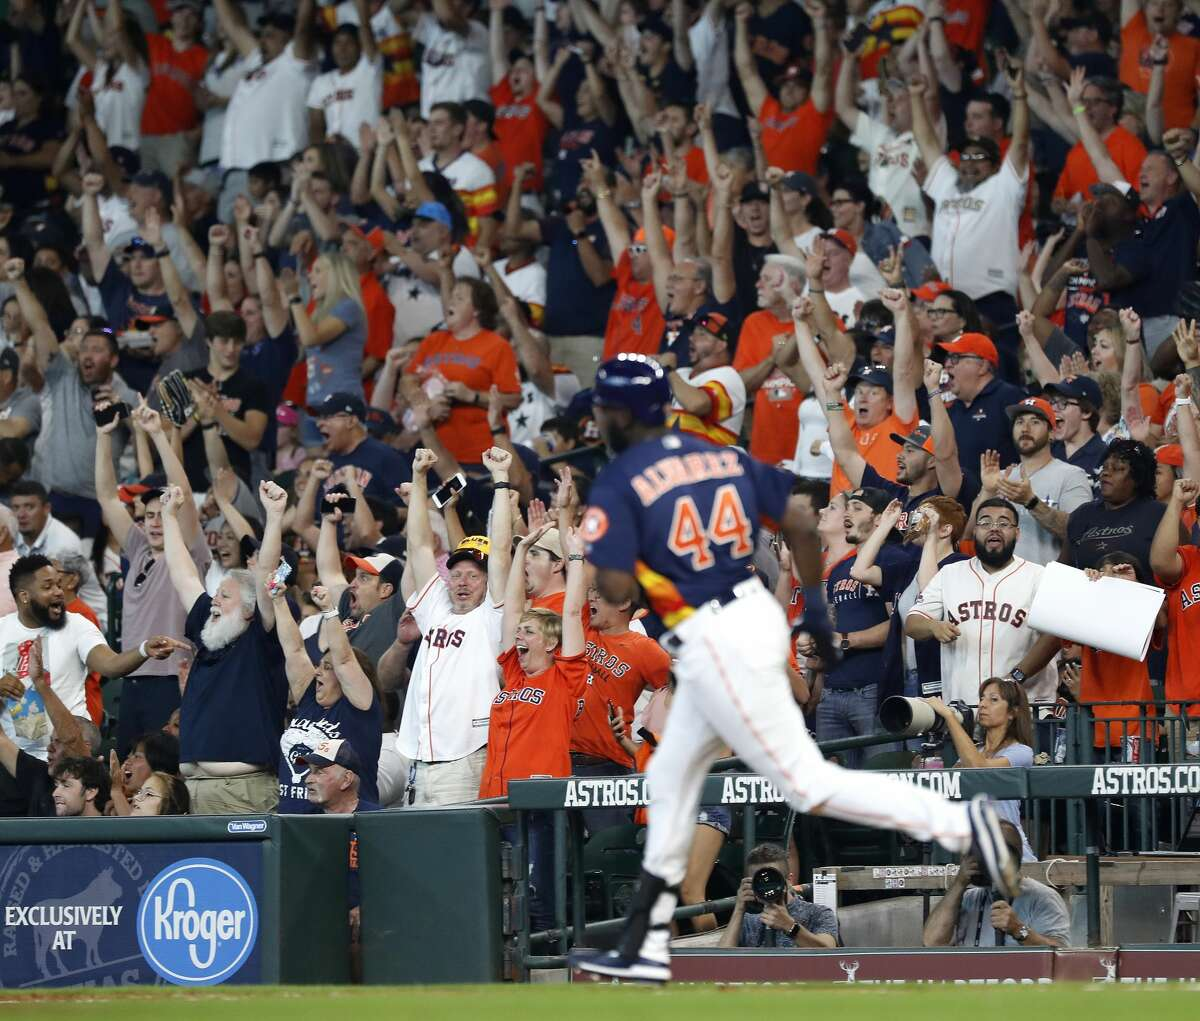 Fans cheer after Houston Astros designated hitter Yordan Alvarez (44) hits his first home run in his second at bat during the fourth inning of an MLB game at Minute Maid Park, Sunday, June 9, 2019, in Houston.